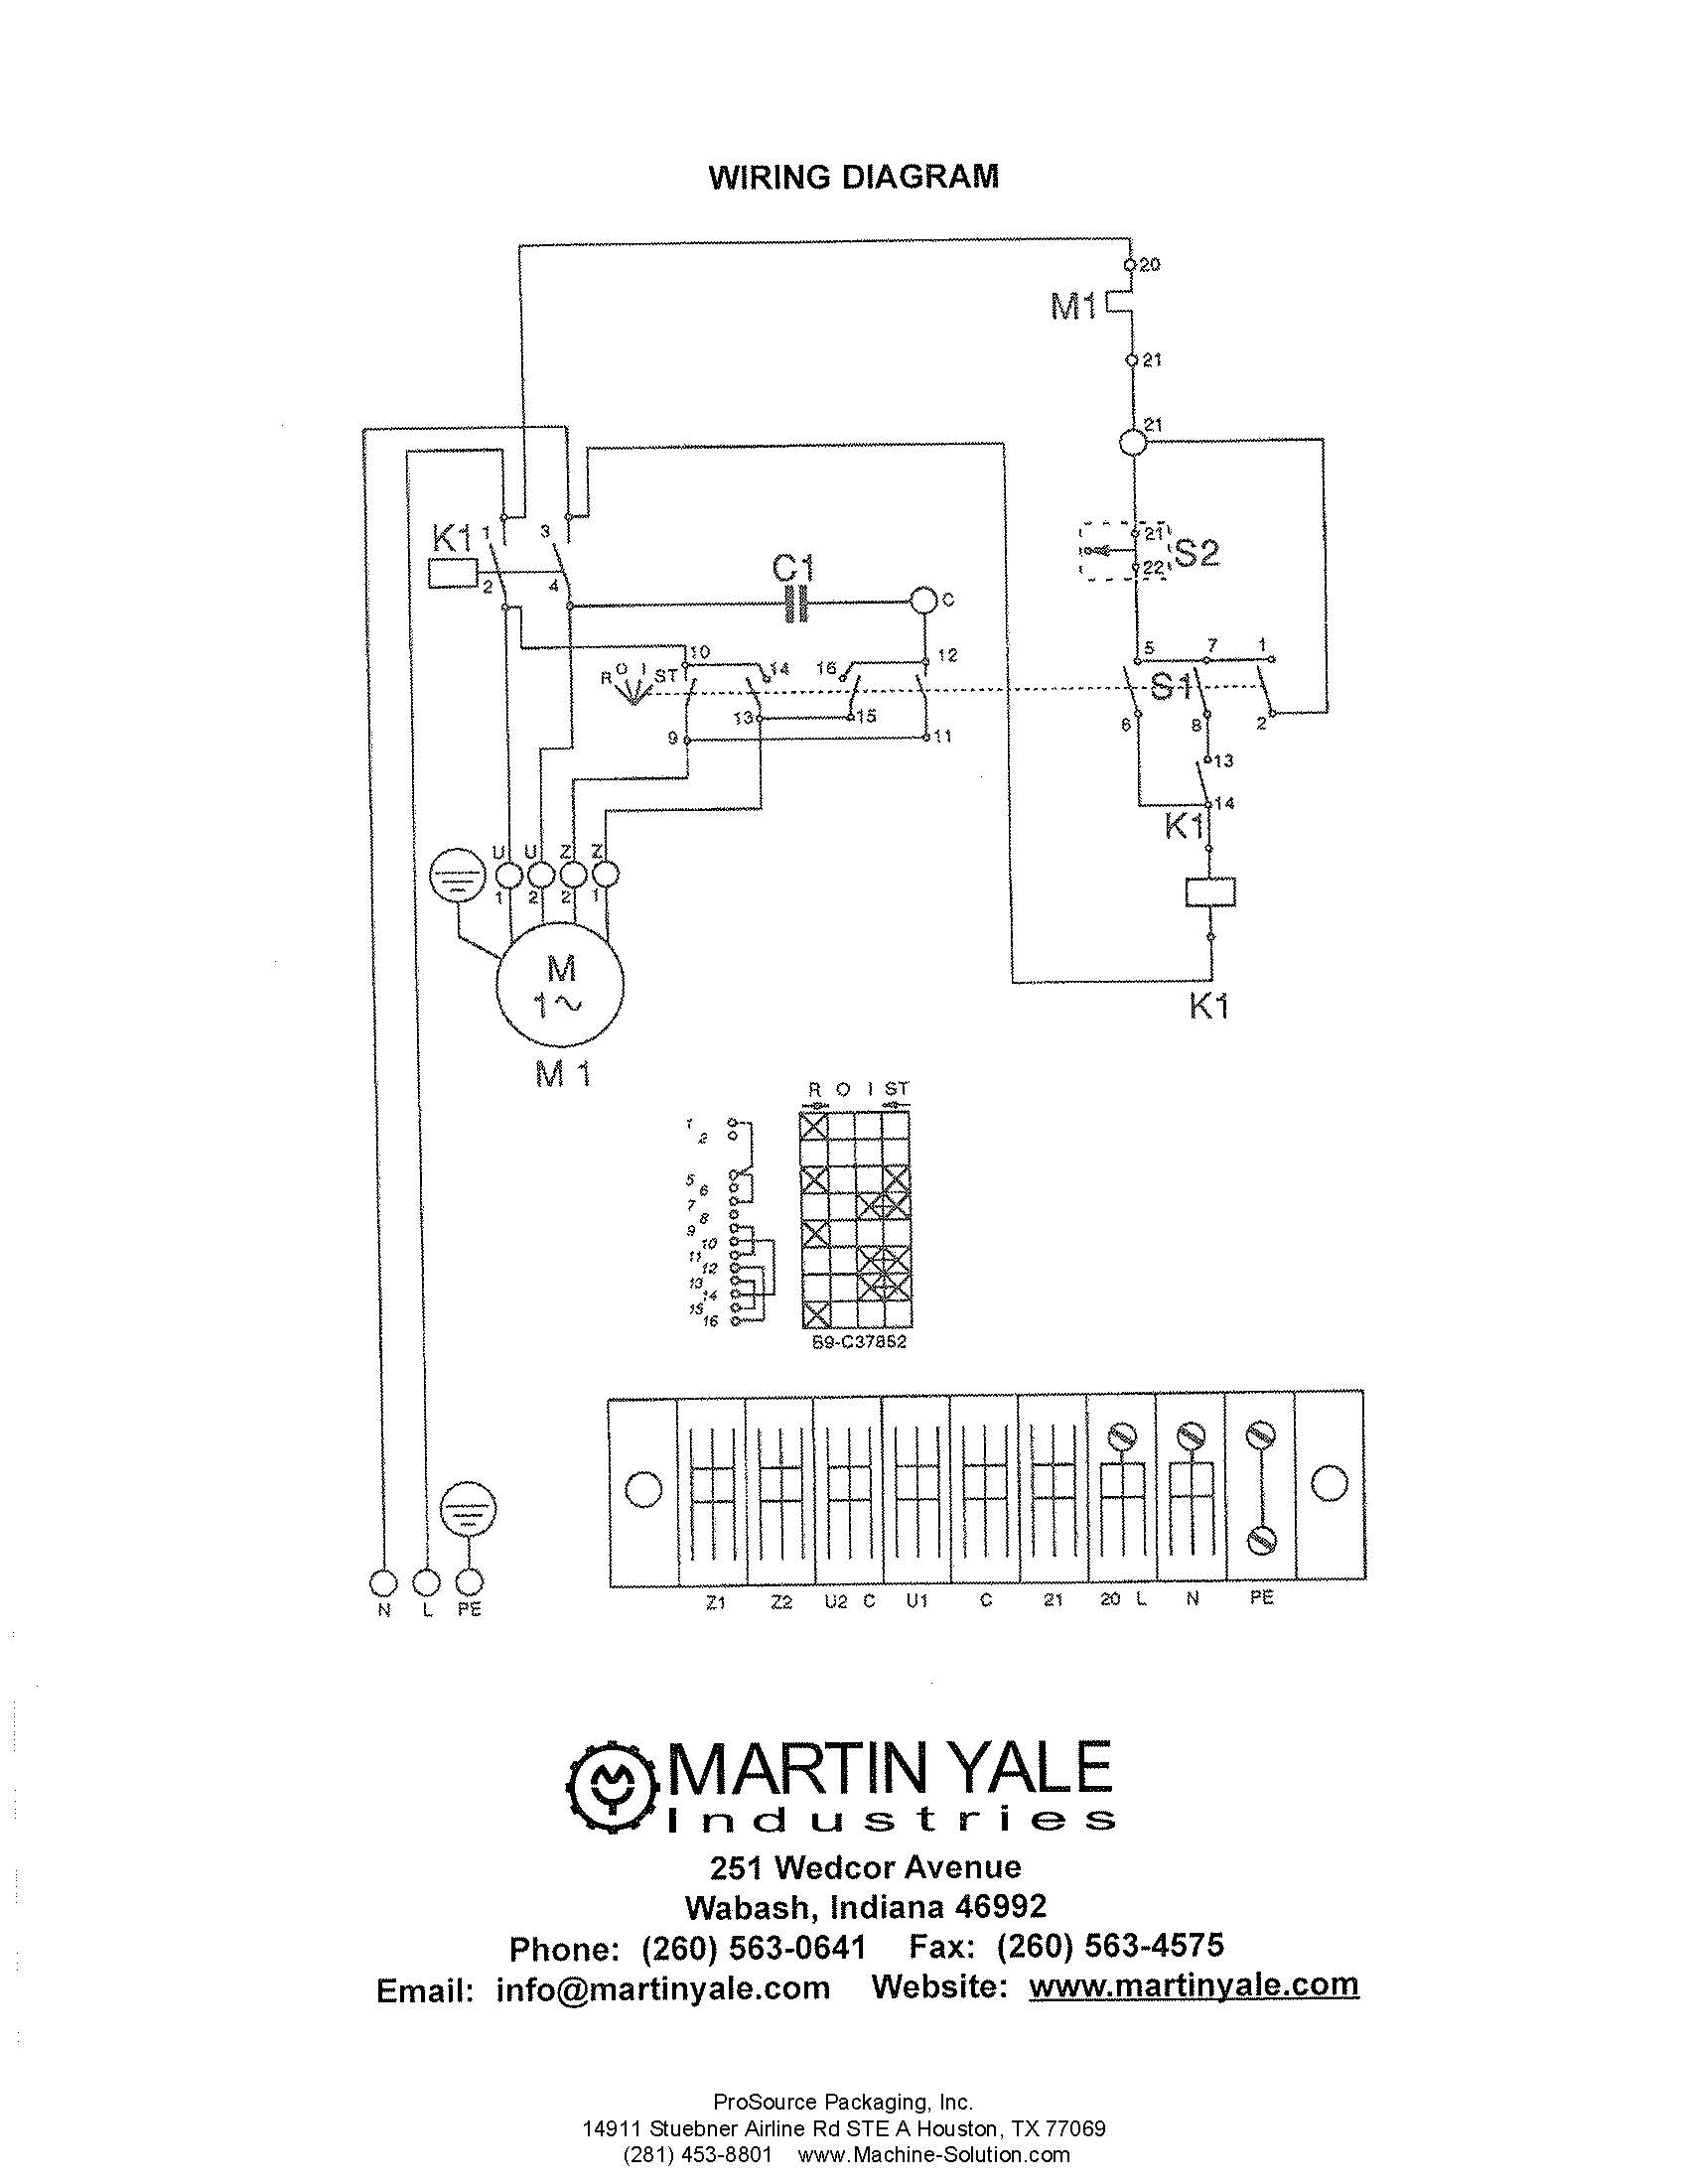 Yale Erp030 Wiring Diagram Circuit And Hub Mpb040 E A955 Lift Specifications